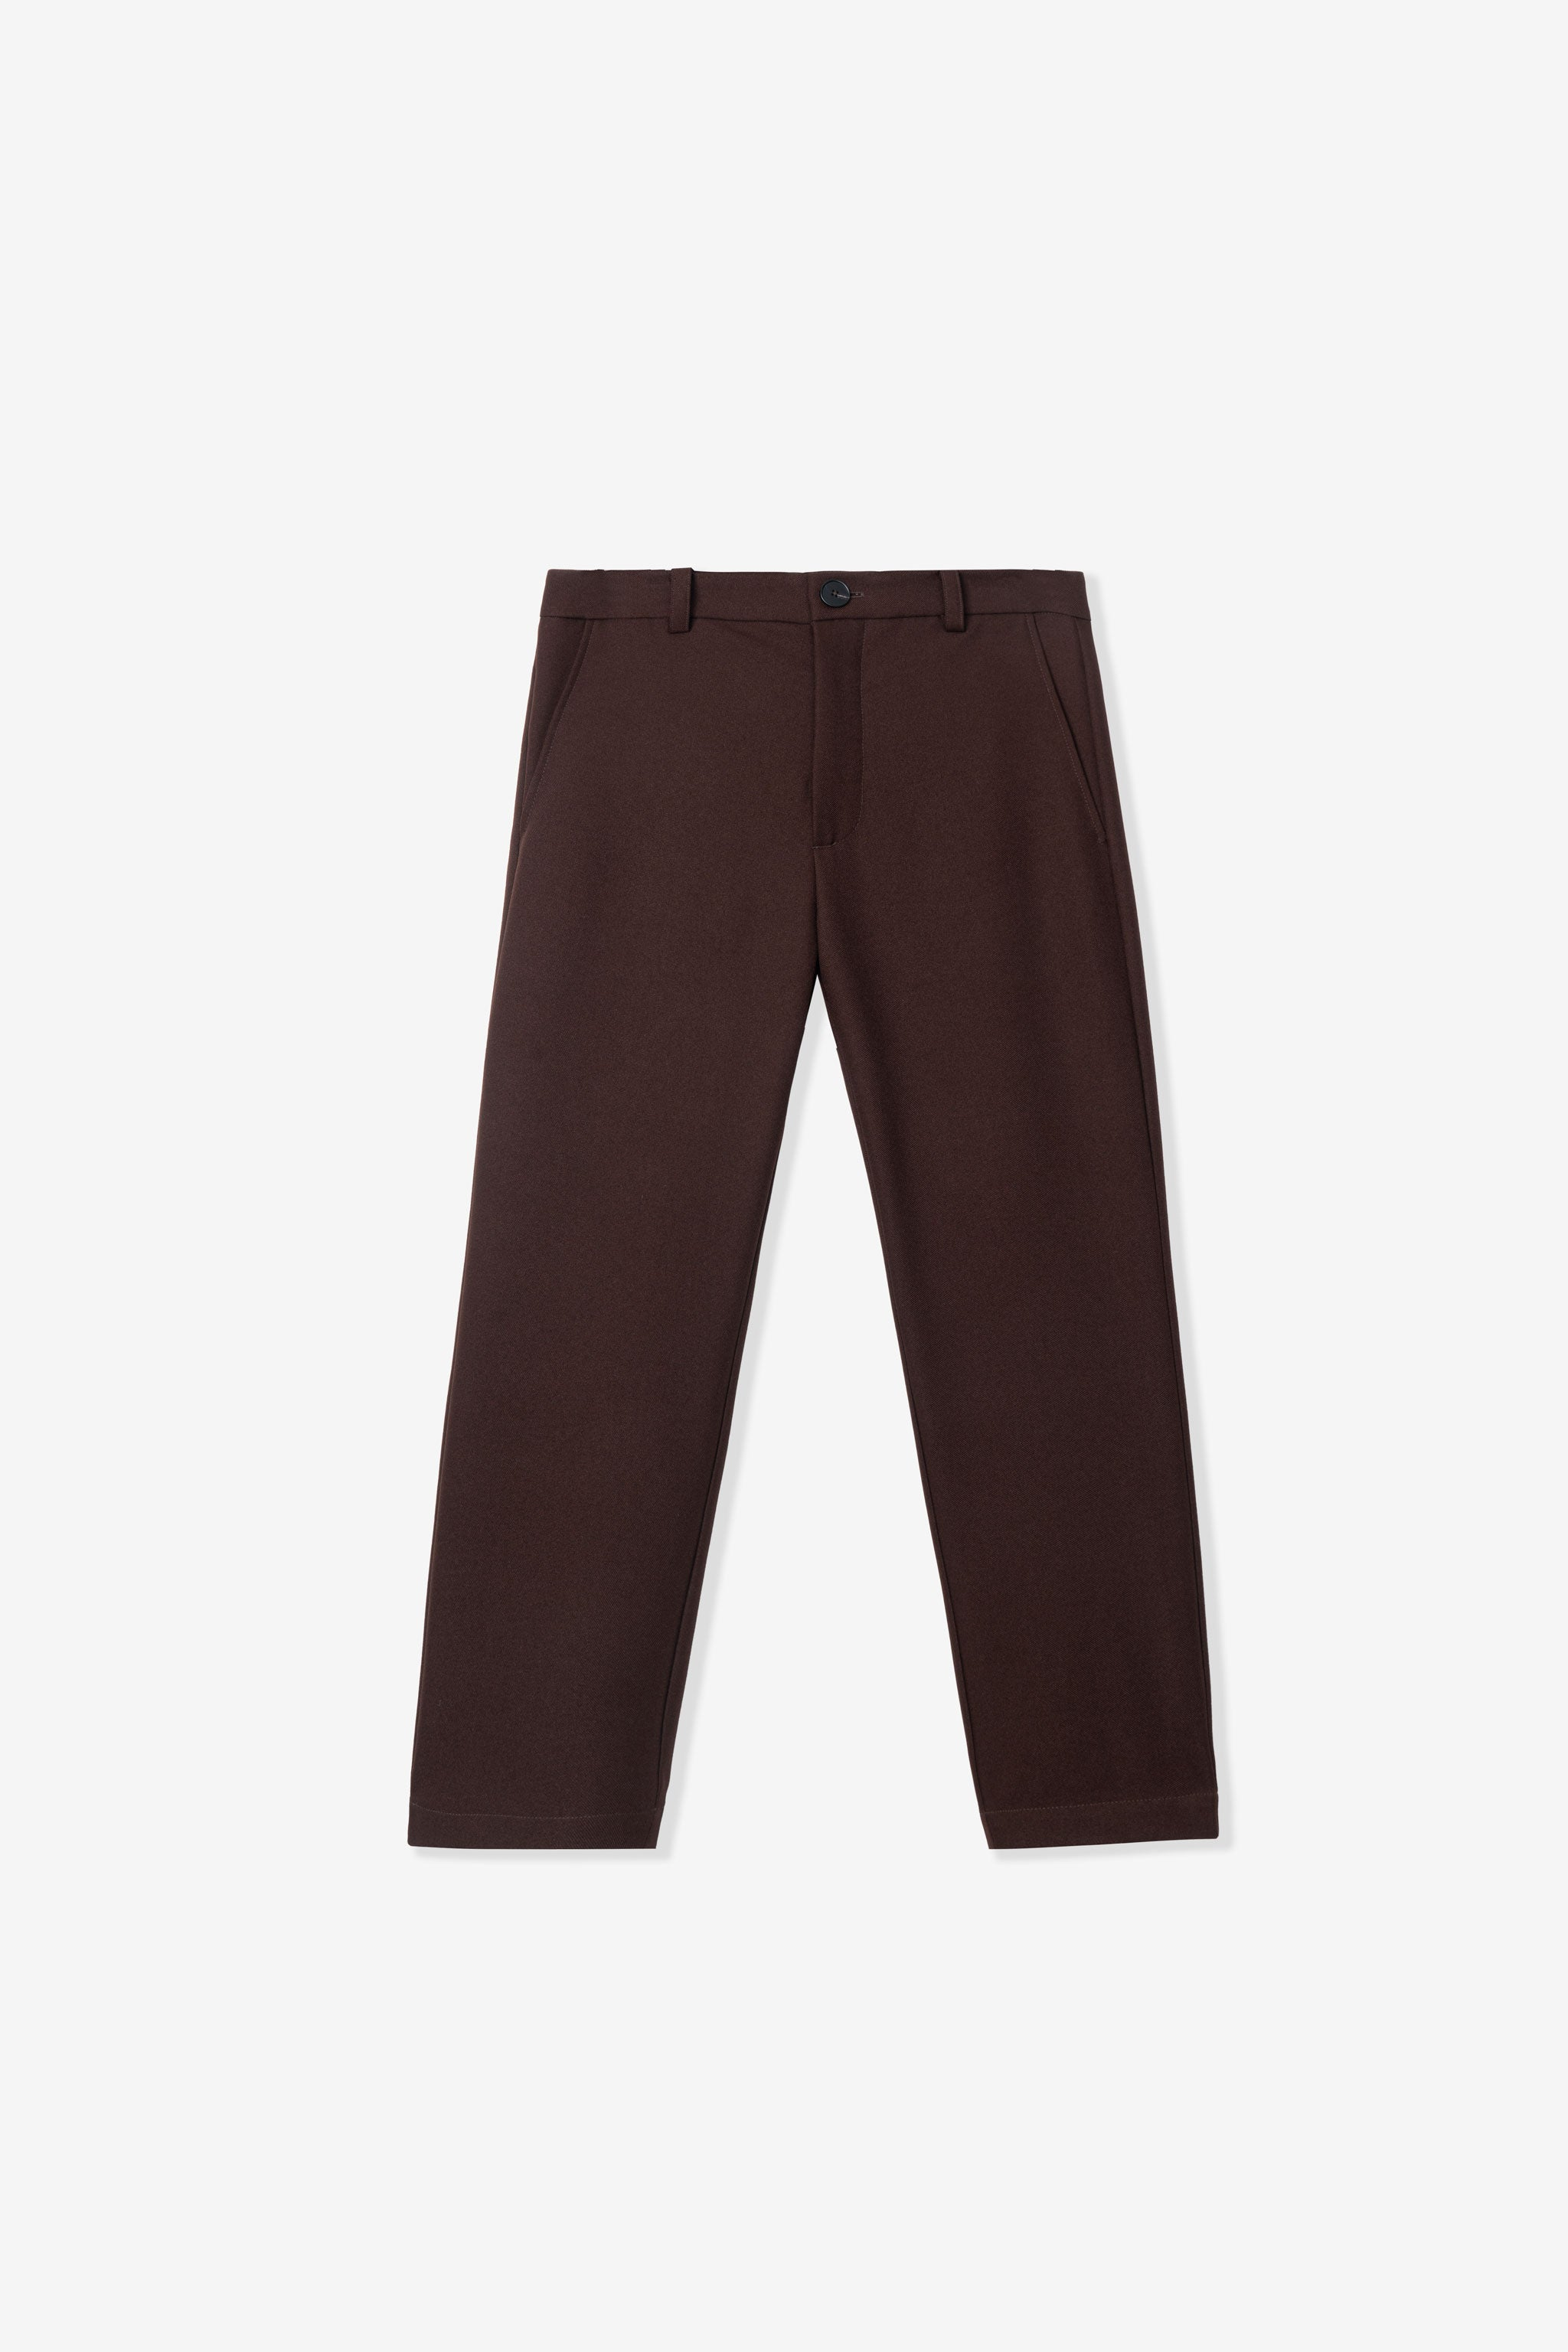 Goodfight Junction Trouser Brown